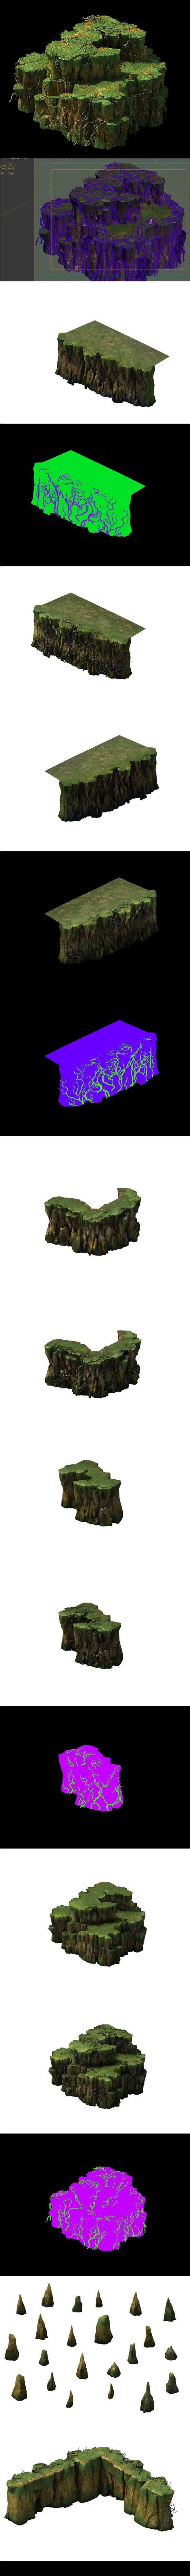 Game Models - poison Valley scene - rock walls covered with vines - 3DOcean Item for Sale